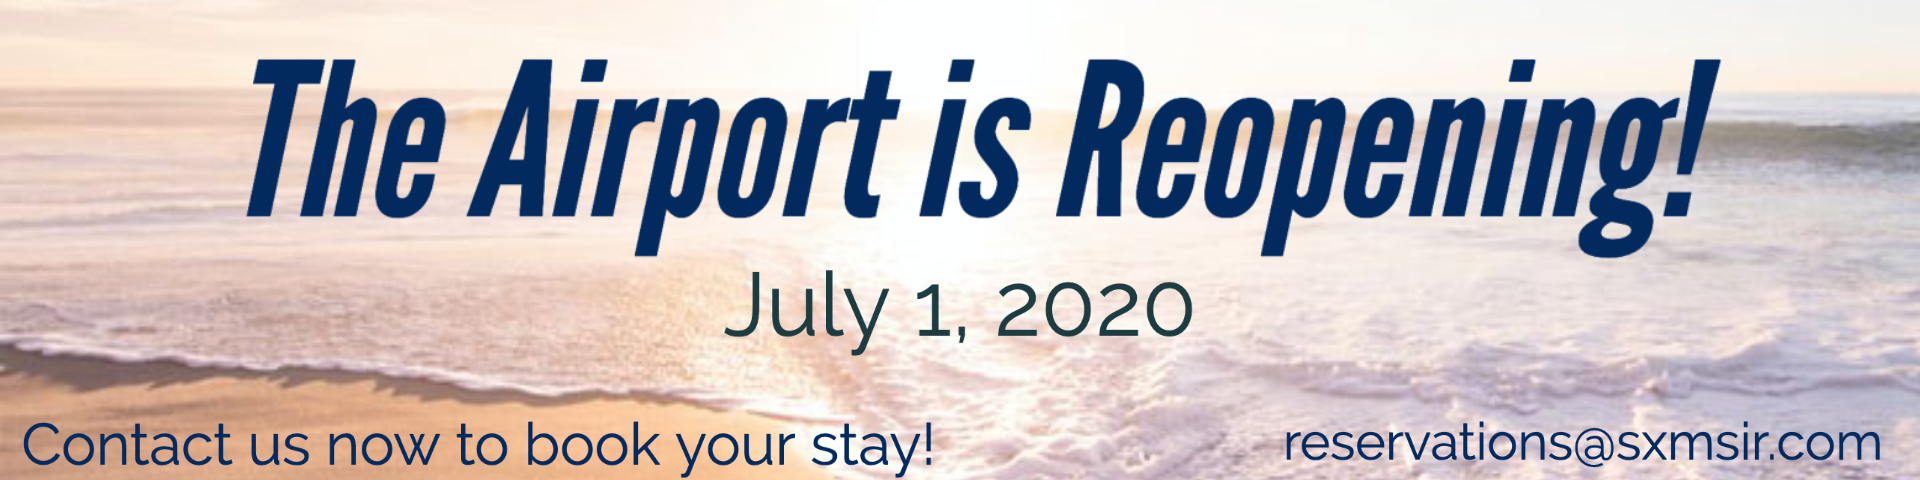 titles image explaining the airport is reopening in st maarten on july 1st. Contact us at reservations@sxmsir.com for detials.